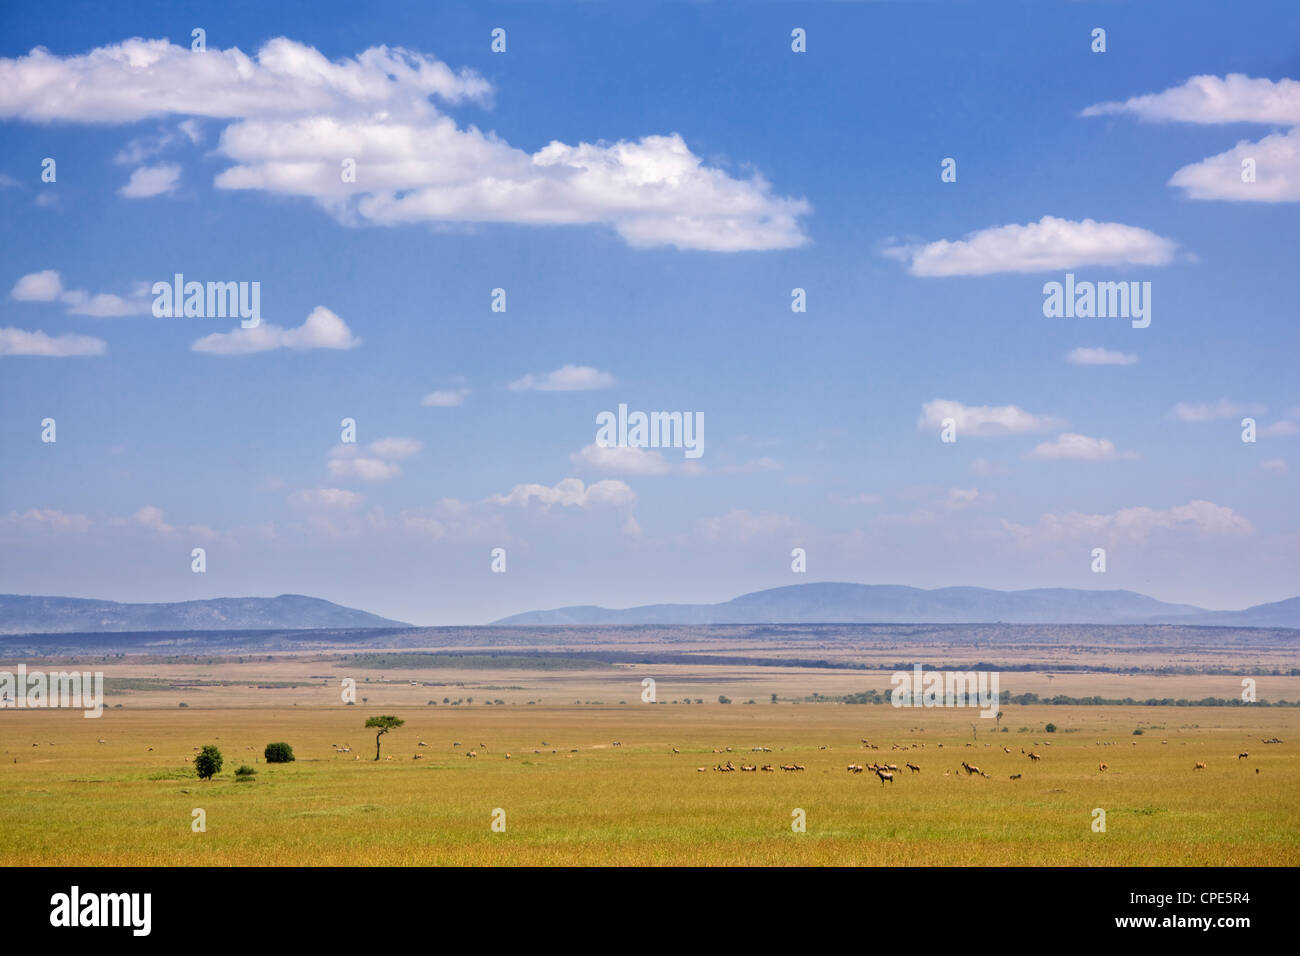 Zebra, topi and other antelope on the plains of the Masai Mara, Kenya, East Africa, Africa - Stock Image